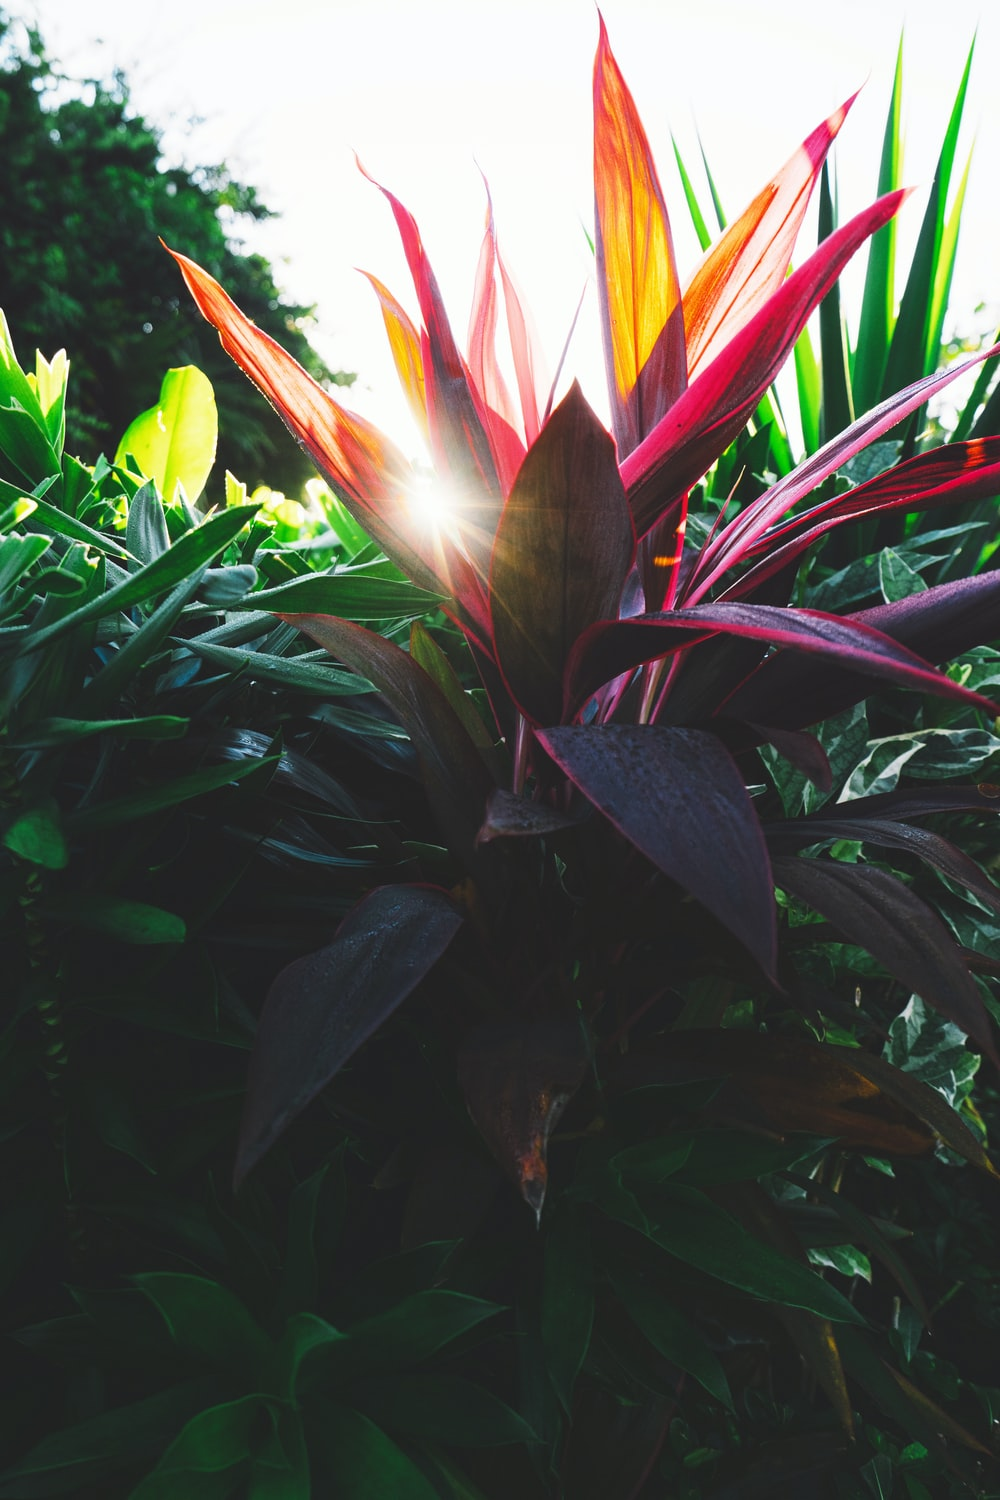 red and green leafed plant during daytime